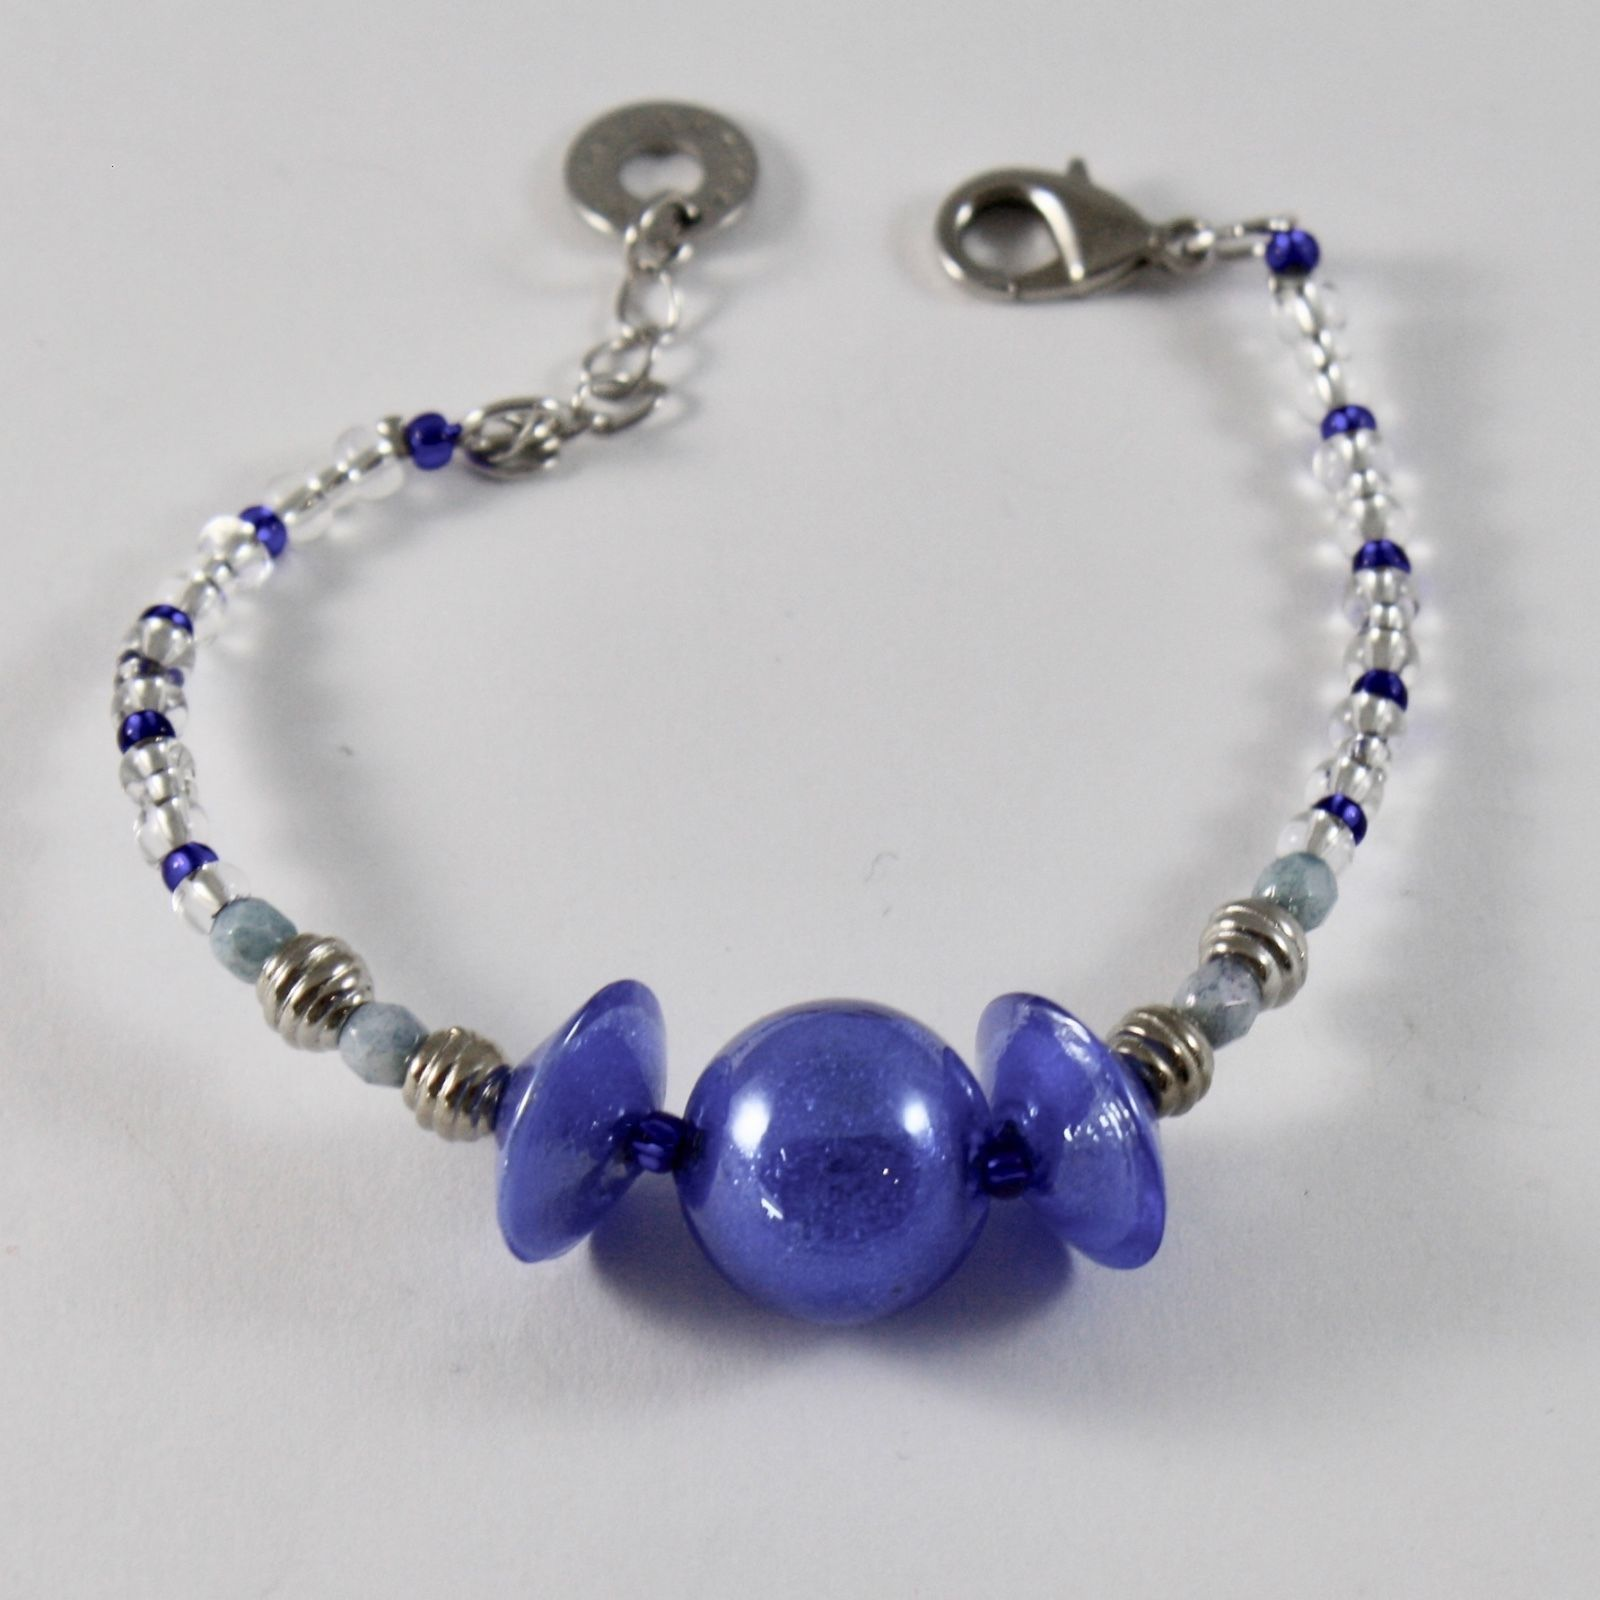 ANTICA MURRINA VENEZIA BRACELET WITH BLUE MURANO GLASS DISC BALL 7 INCHES LONG